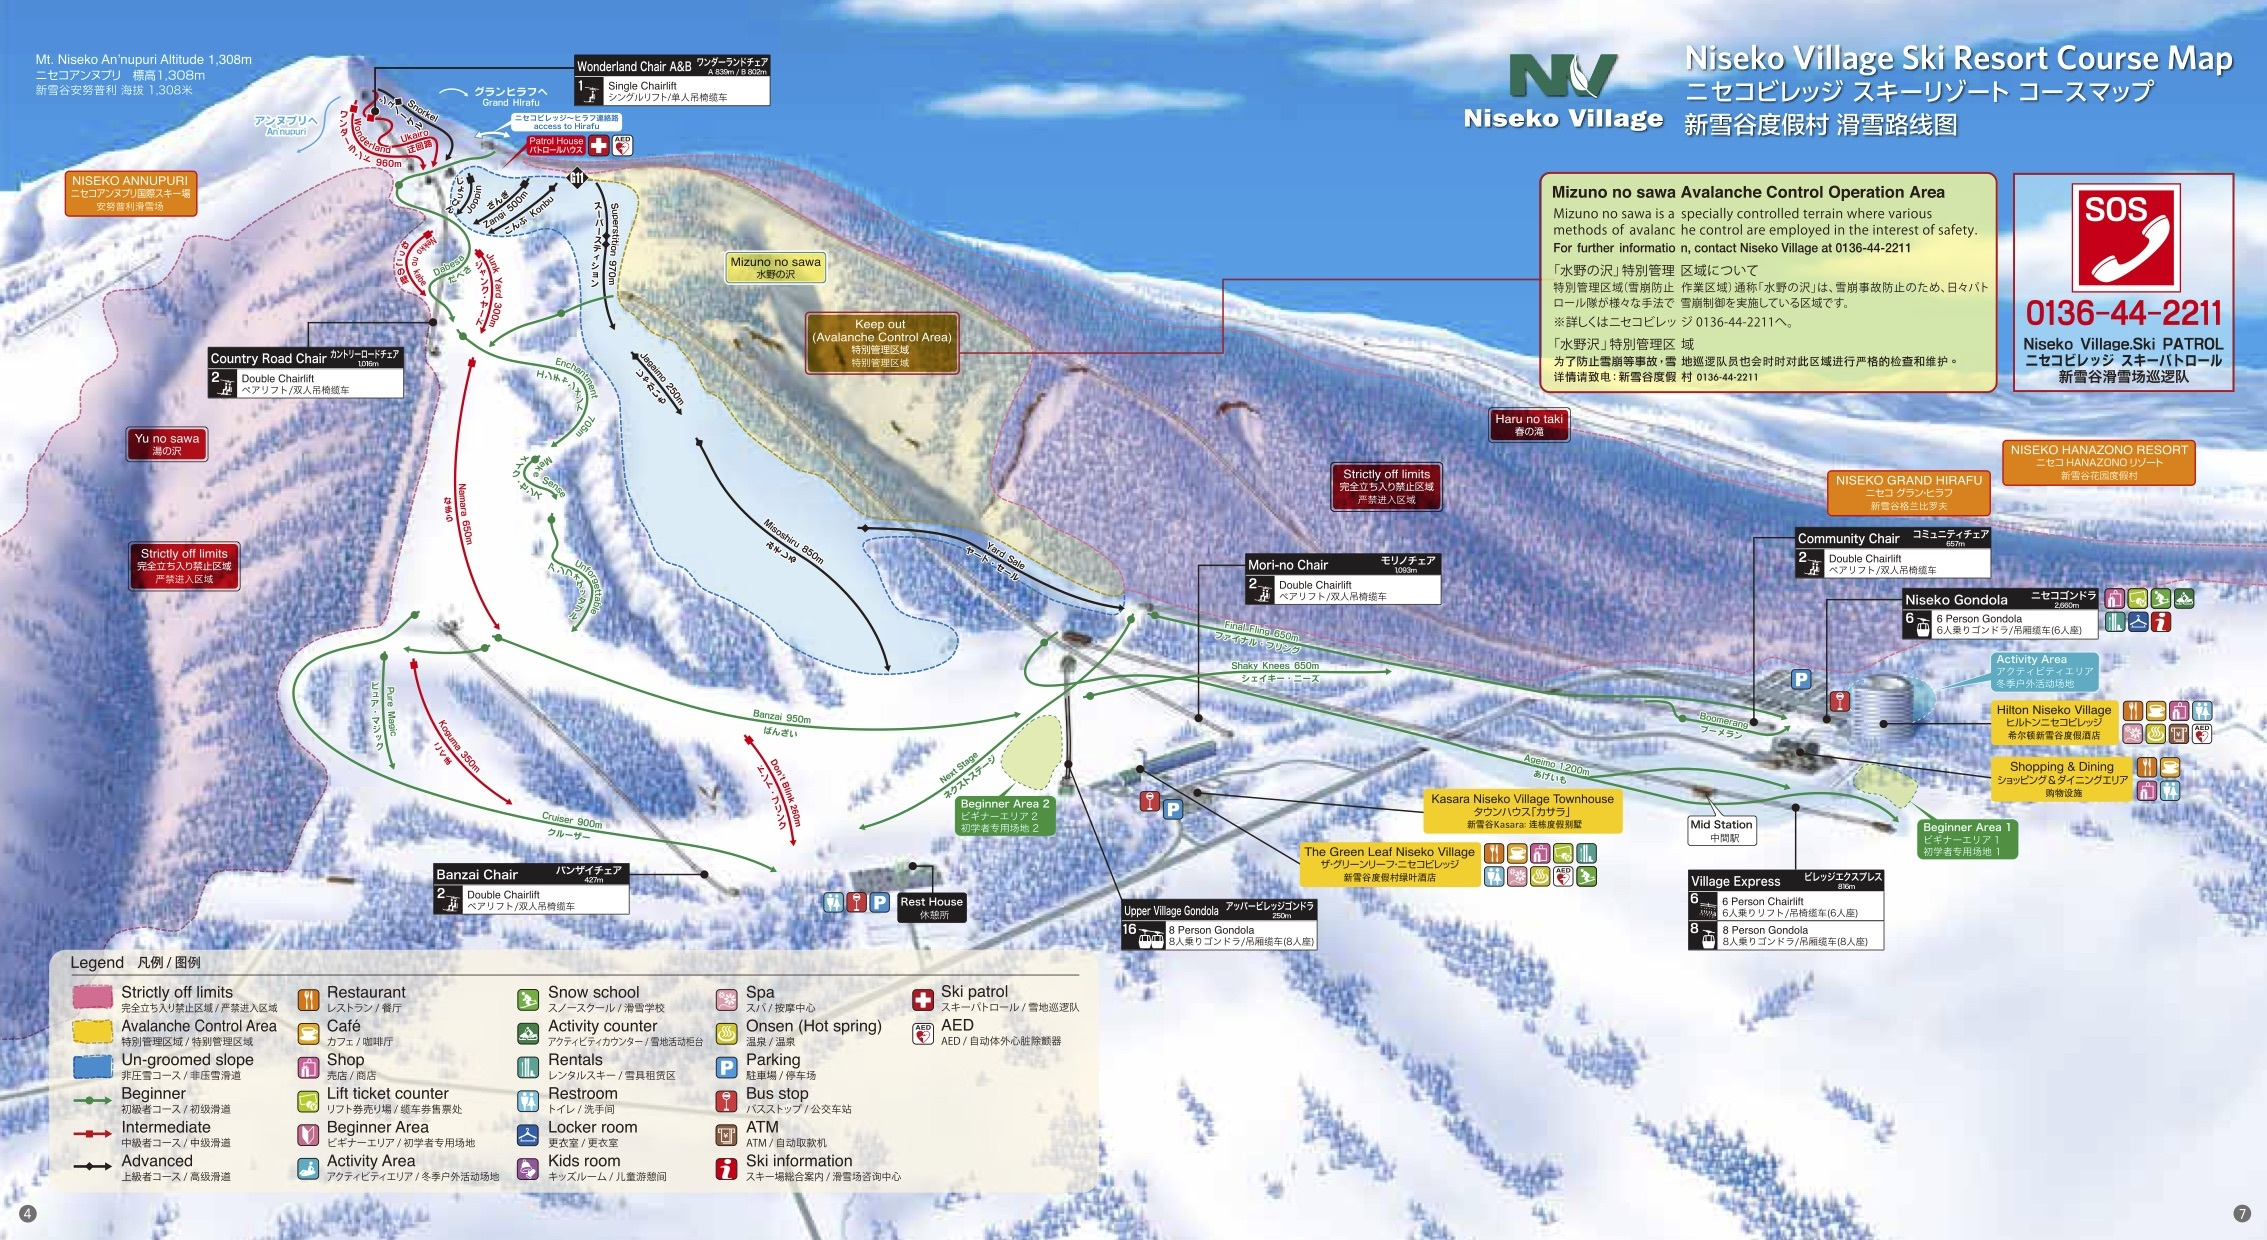 Niseko Village Ski Resort Guide, Location Map & Niseko Village ski on map of washington state lakes, map of southern idaho and oregon, map of southern washington, map of so, map of oregon washington british columbia, map of seattle and british columbia, map of oregon and washington wine, map of oregon casinos, map of washington state lower,